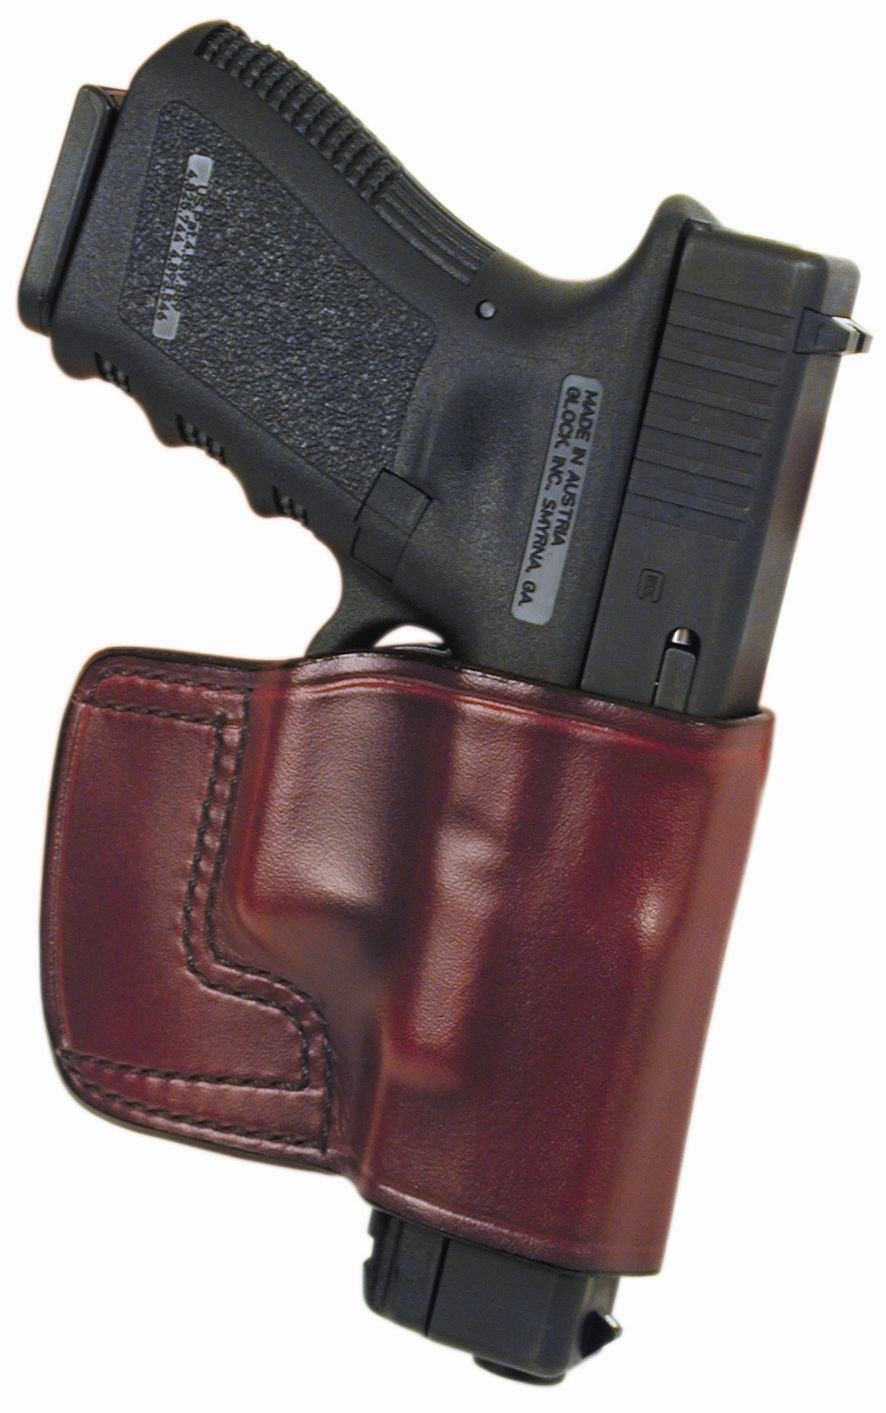 Don Hume JIT Belt Slide Open Bottom Style Concealment Leather Gun Holster